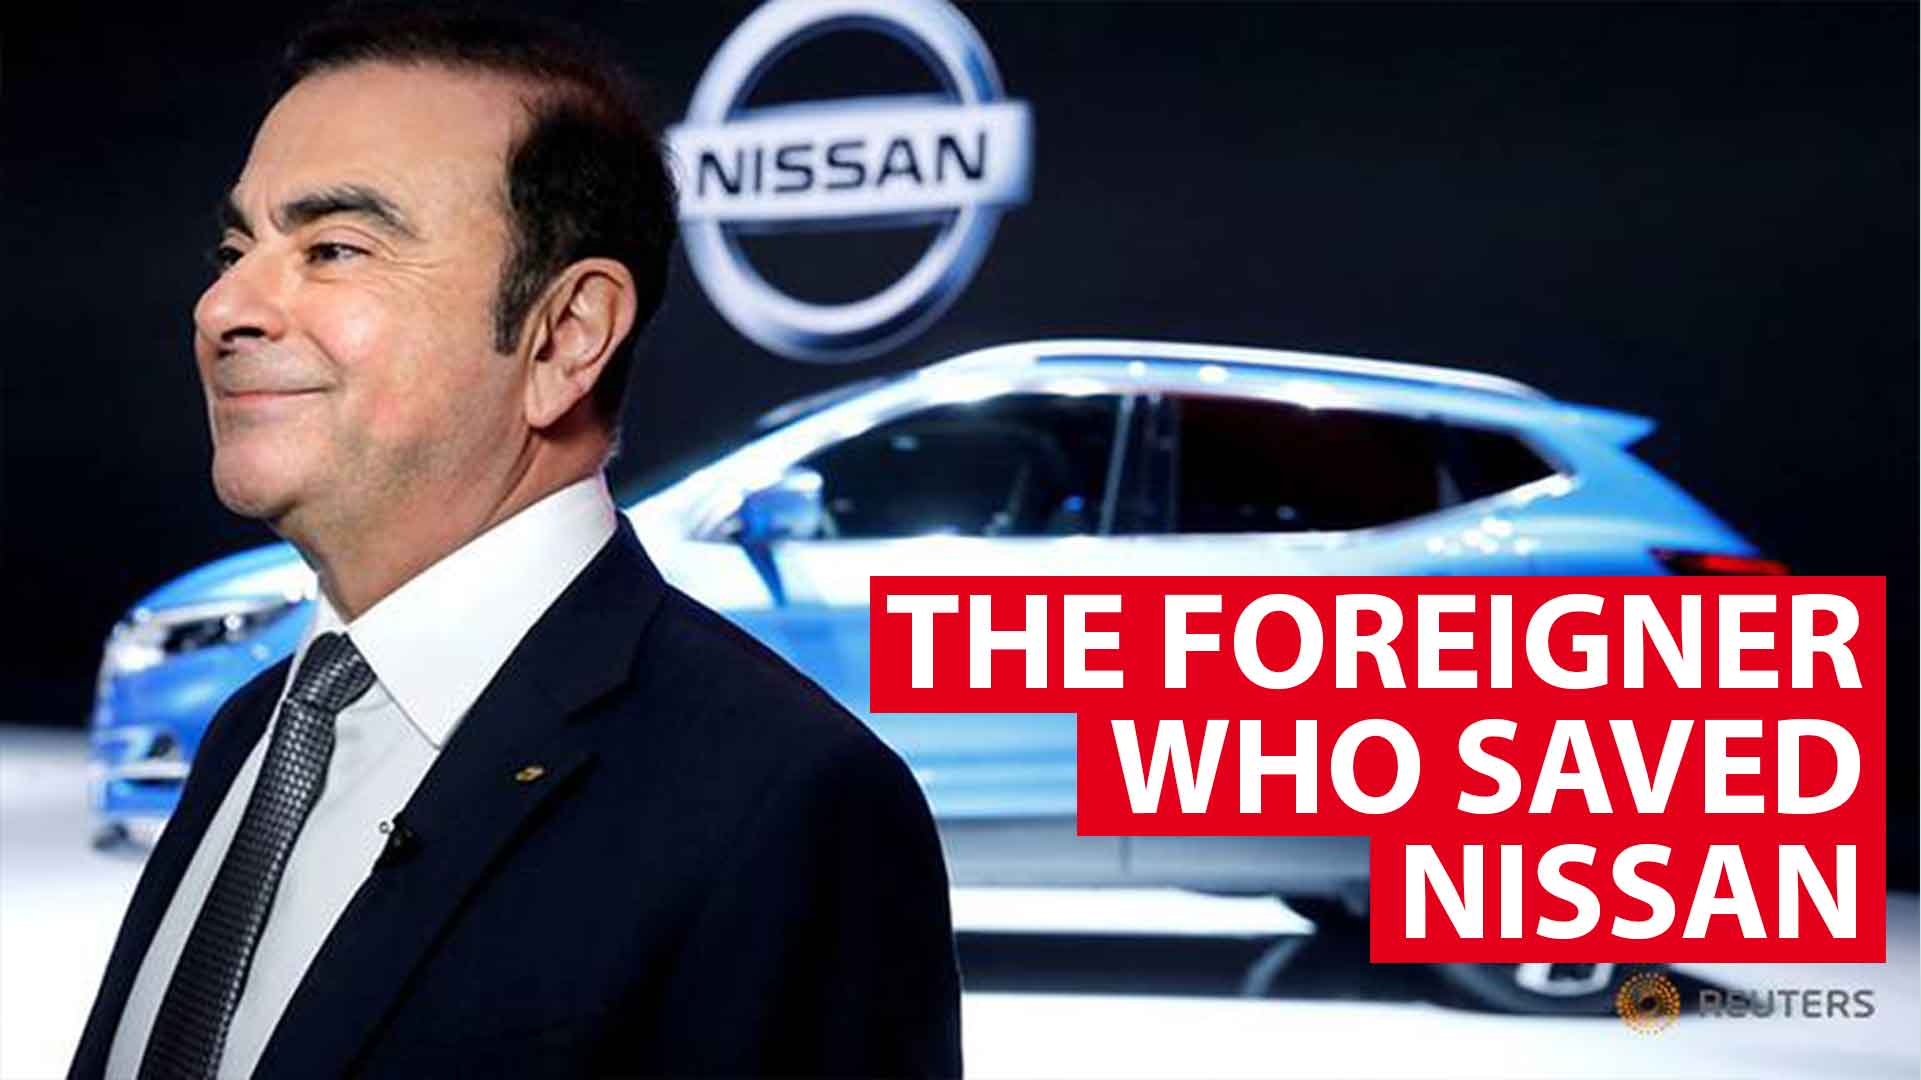 The foreigner who saved Nissan